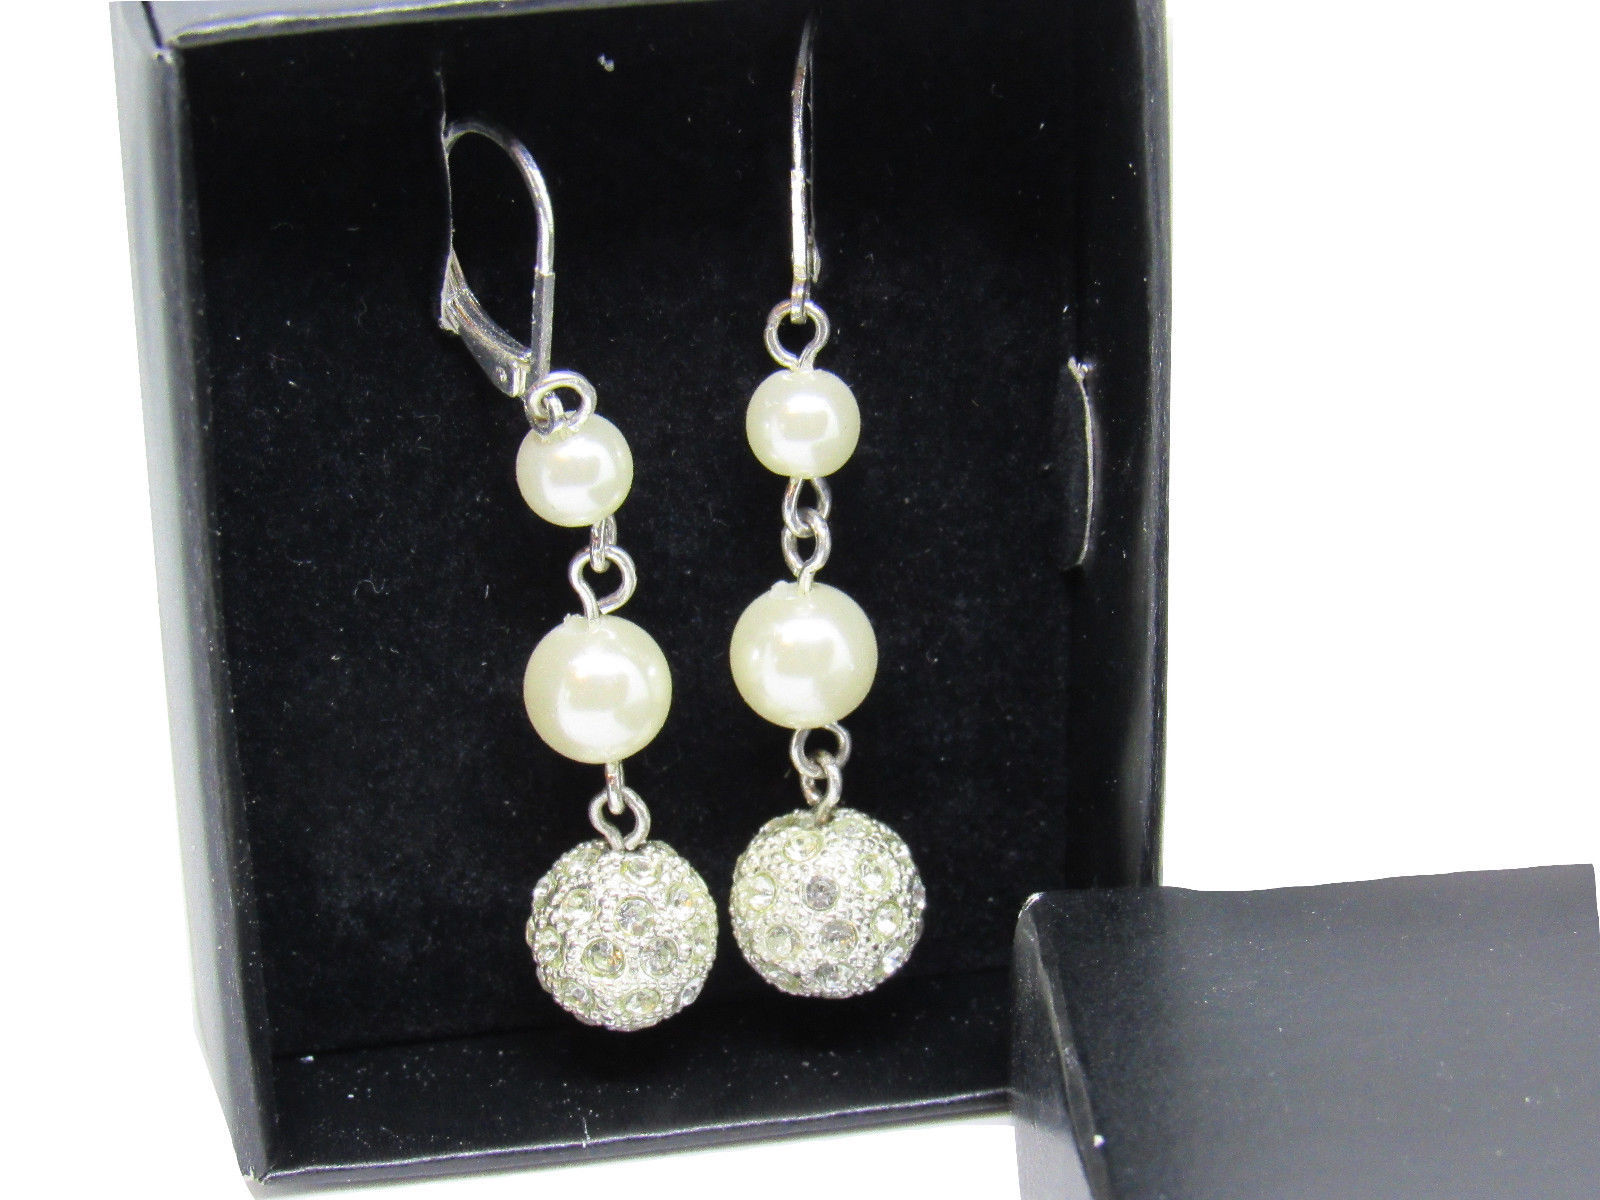 Avon 2011 President's Club Pearlesque Earrings Dangle Leverback image 5